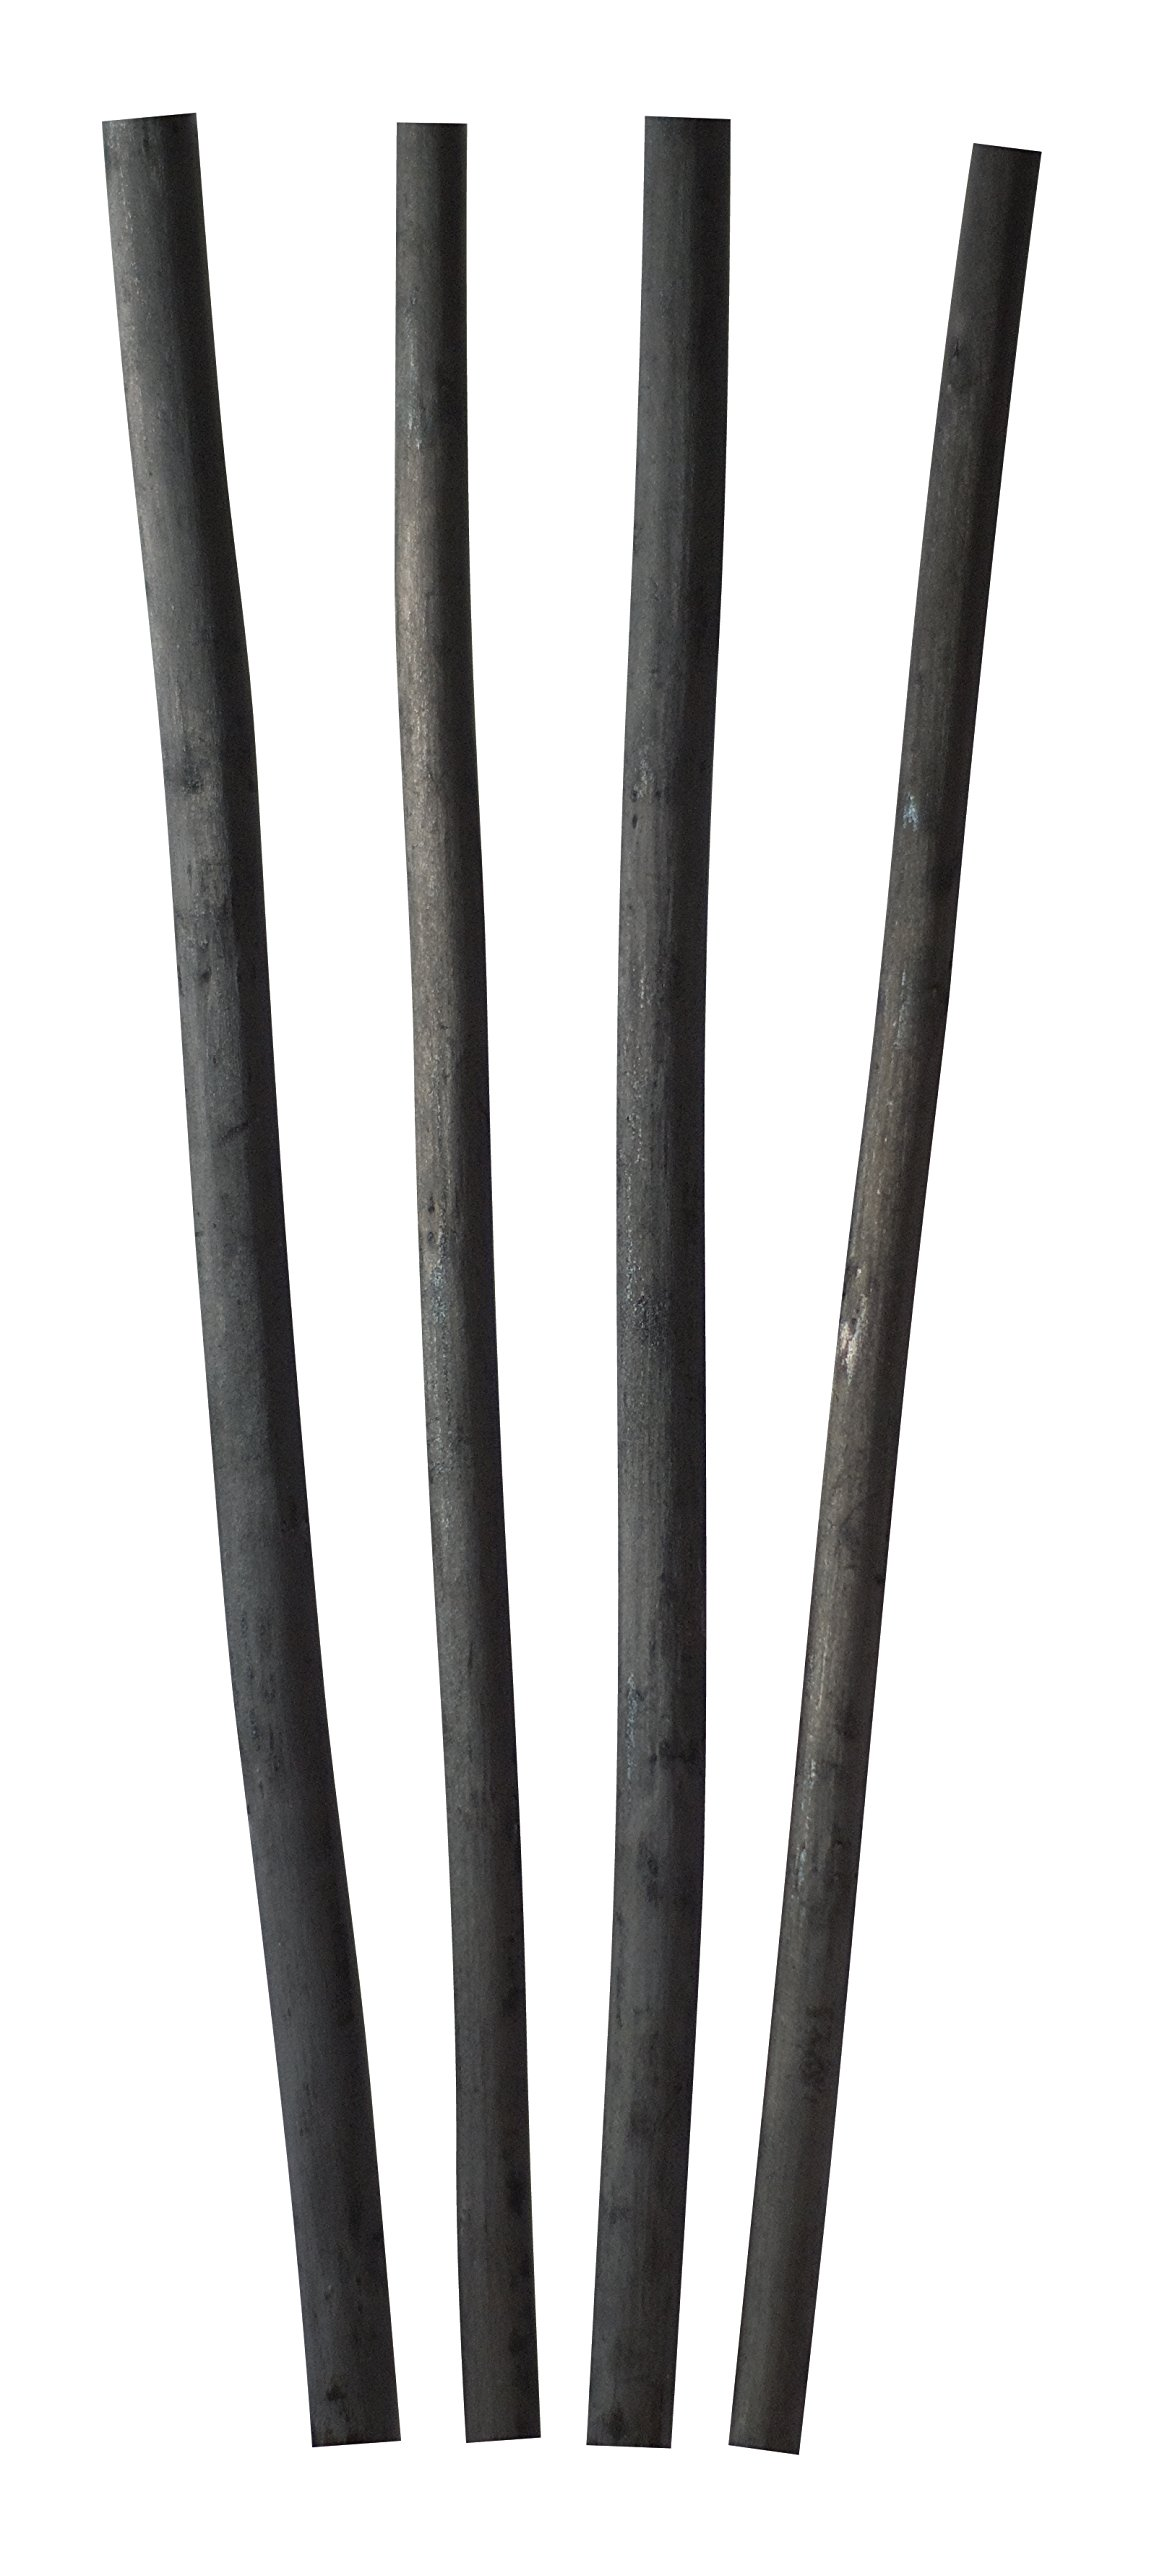 Heritage Arts VH4S Vine Charcoal 4-Pack Set (Soft) by Heritage Arts